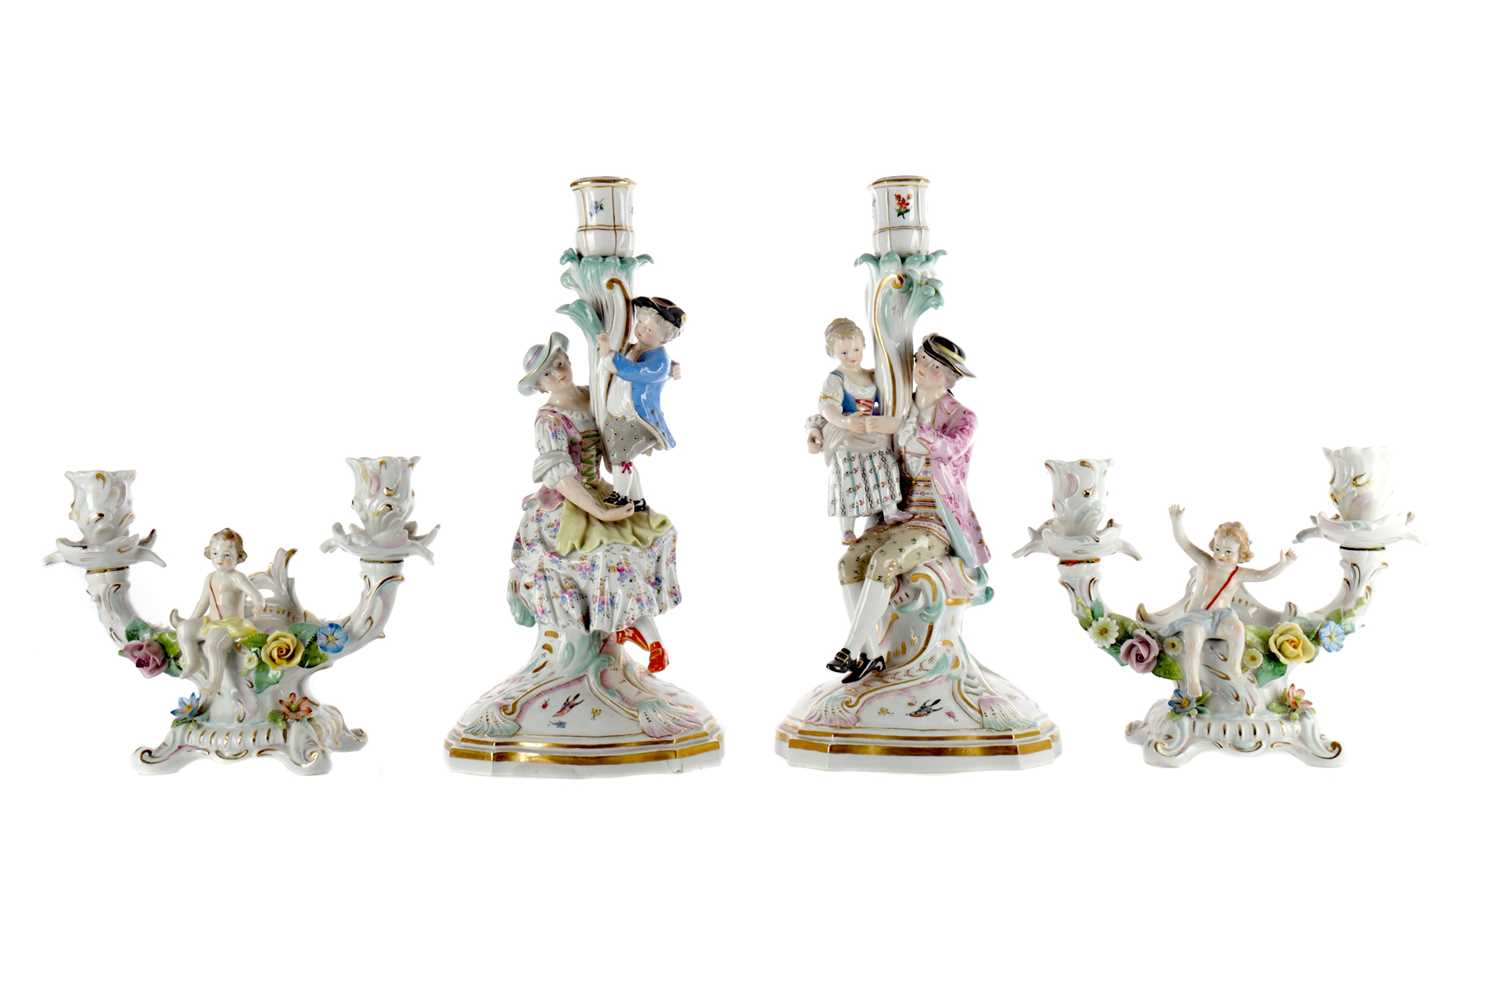 Lot 1010 - A PAIR OF 19TH CENTURY MEISSEN FIGURAL TABLE CANDLESTICKS